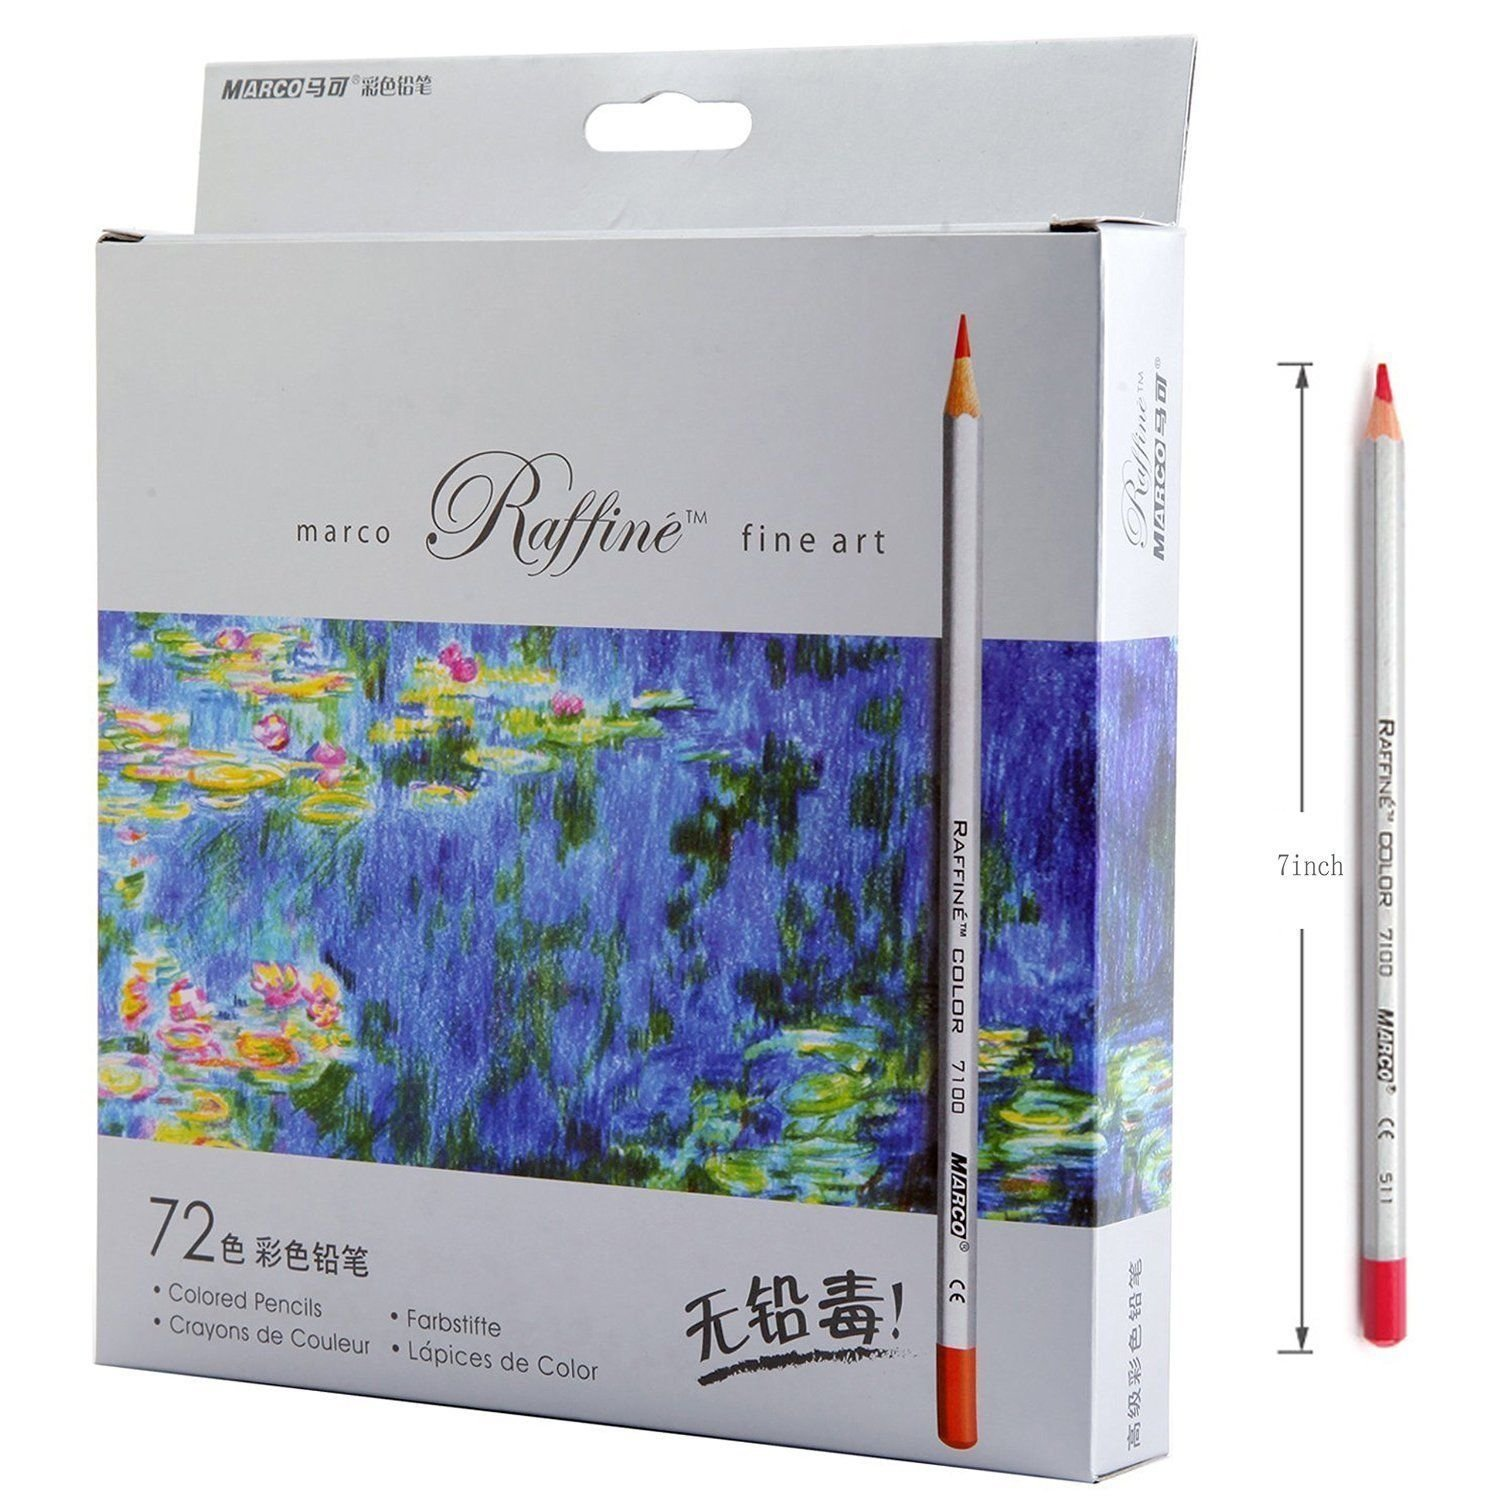 72-color Raffine Marco Fine Art Colored Pencils/ Drawing Pencils for Sketch/ Secret Garden Coloring Book (Not Included) 100% New